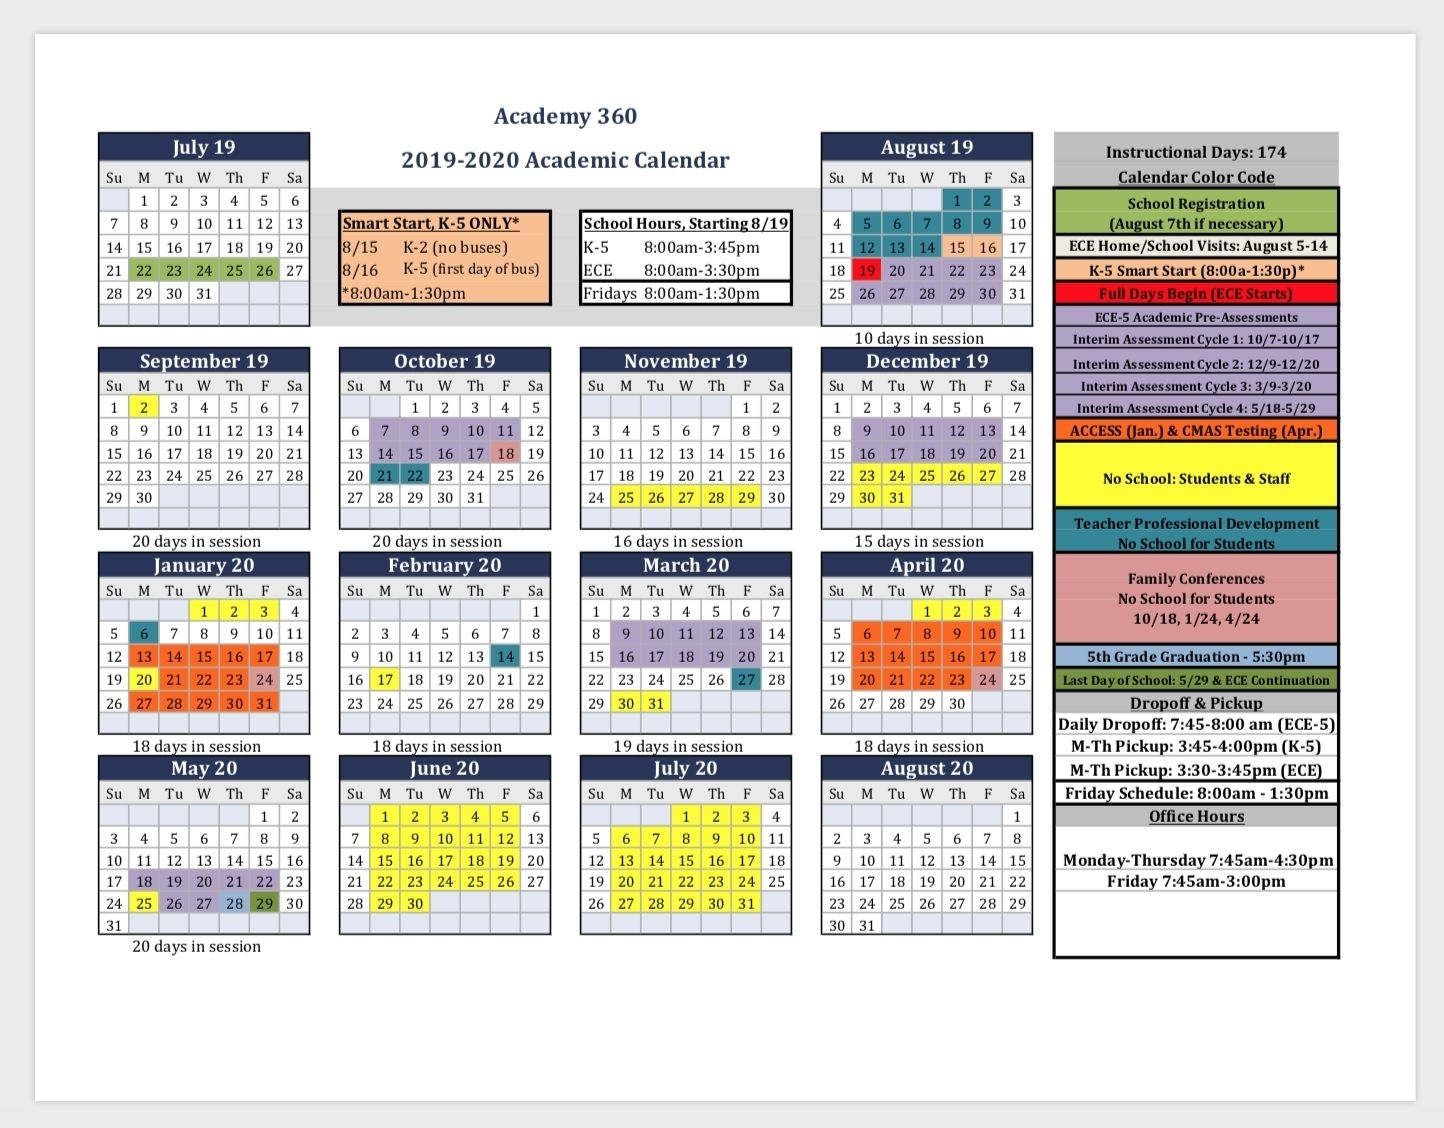 2020 Calendar With Special Days In 2020 | Special Day throughout Calendar With All Special Days 2020